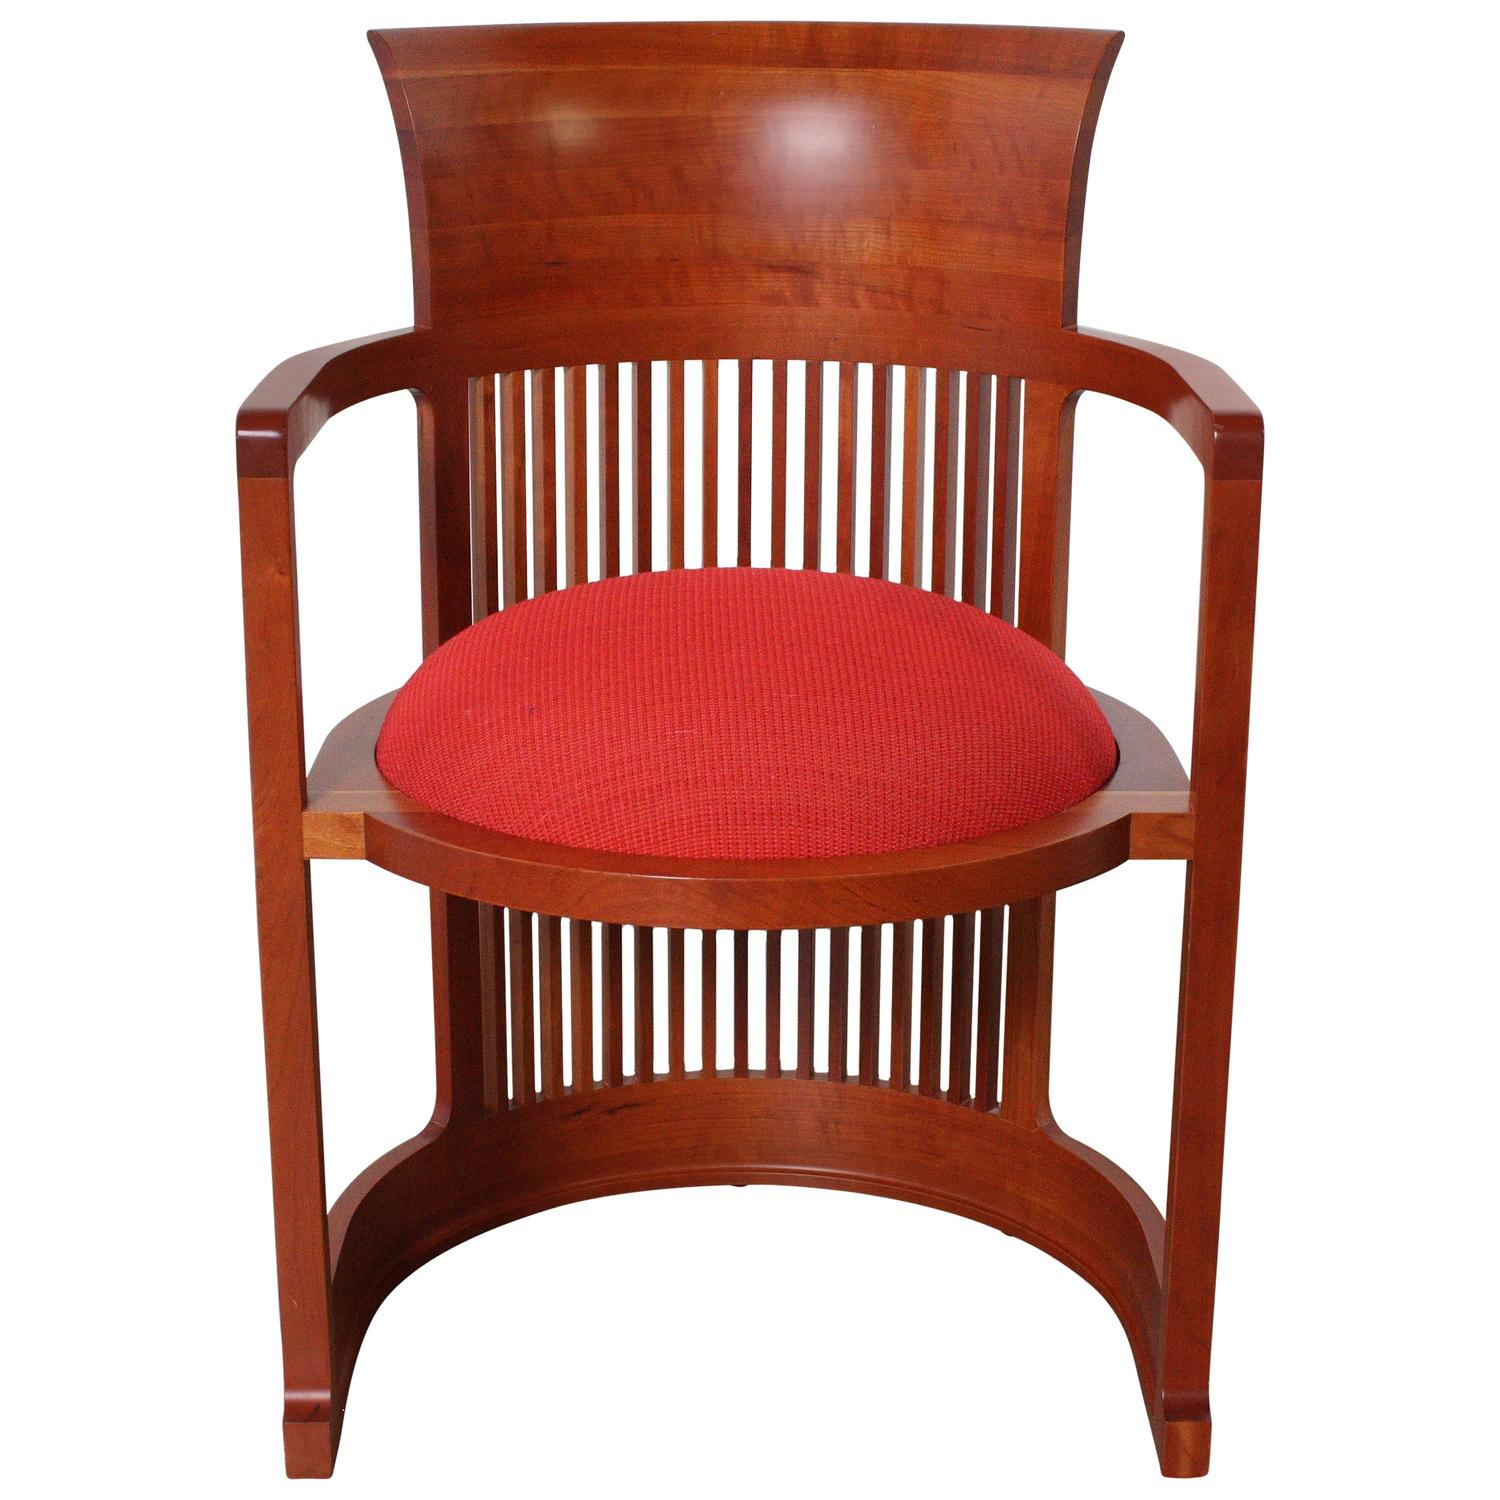 Frank Lloyd Wright Chairs Frank Lloyd Wright Barrel Chair From Cassina At 1stdibs